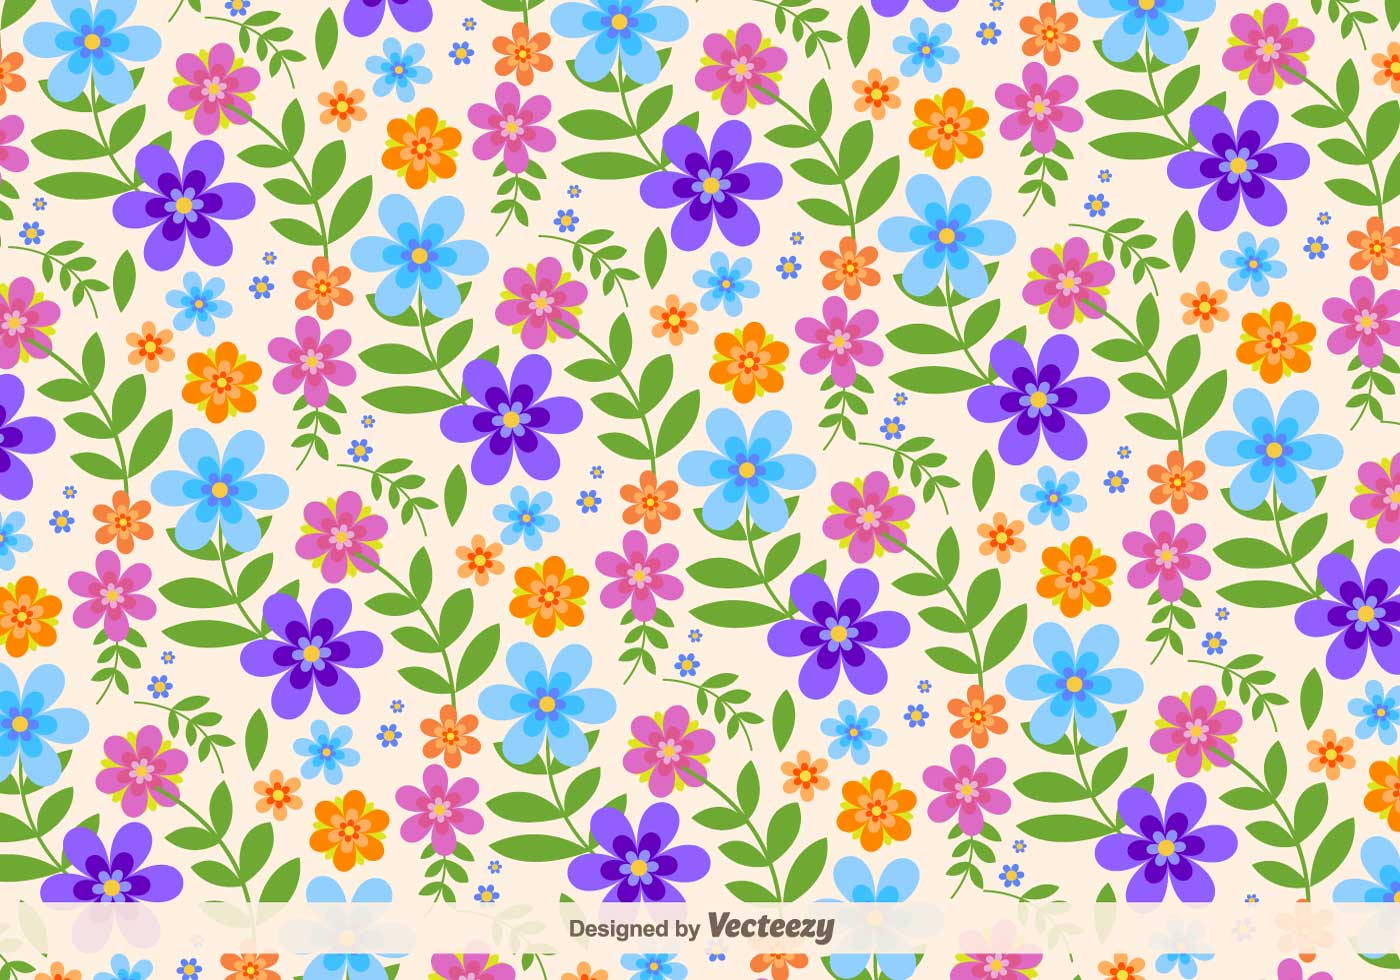 Floral retro vector background download free vector art stock graphics images - Floral background ...